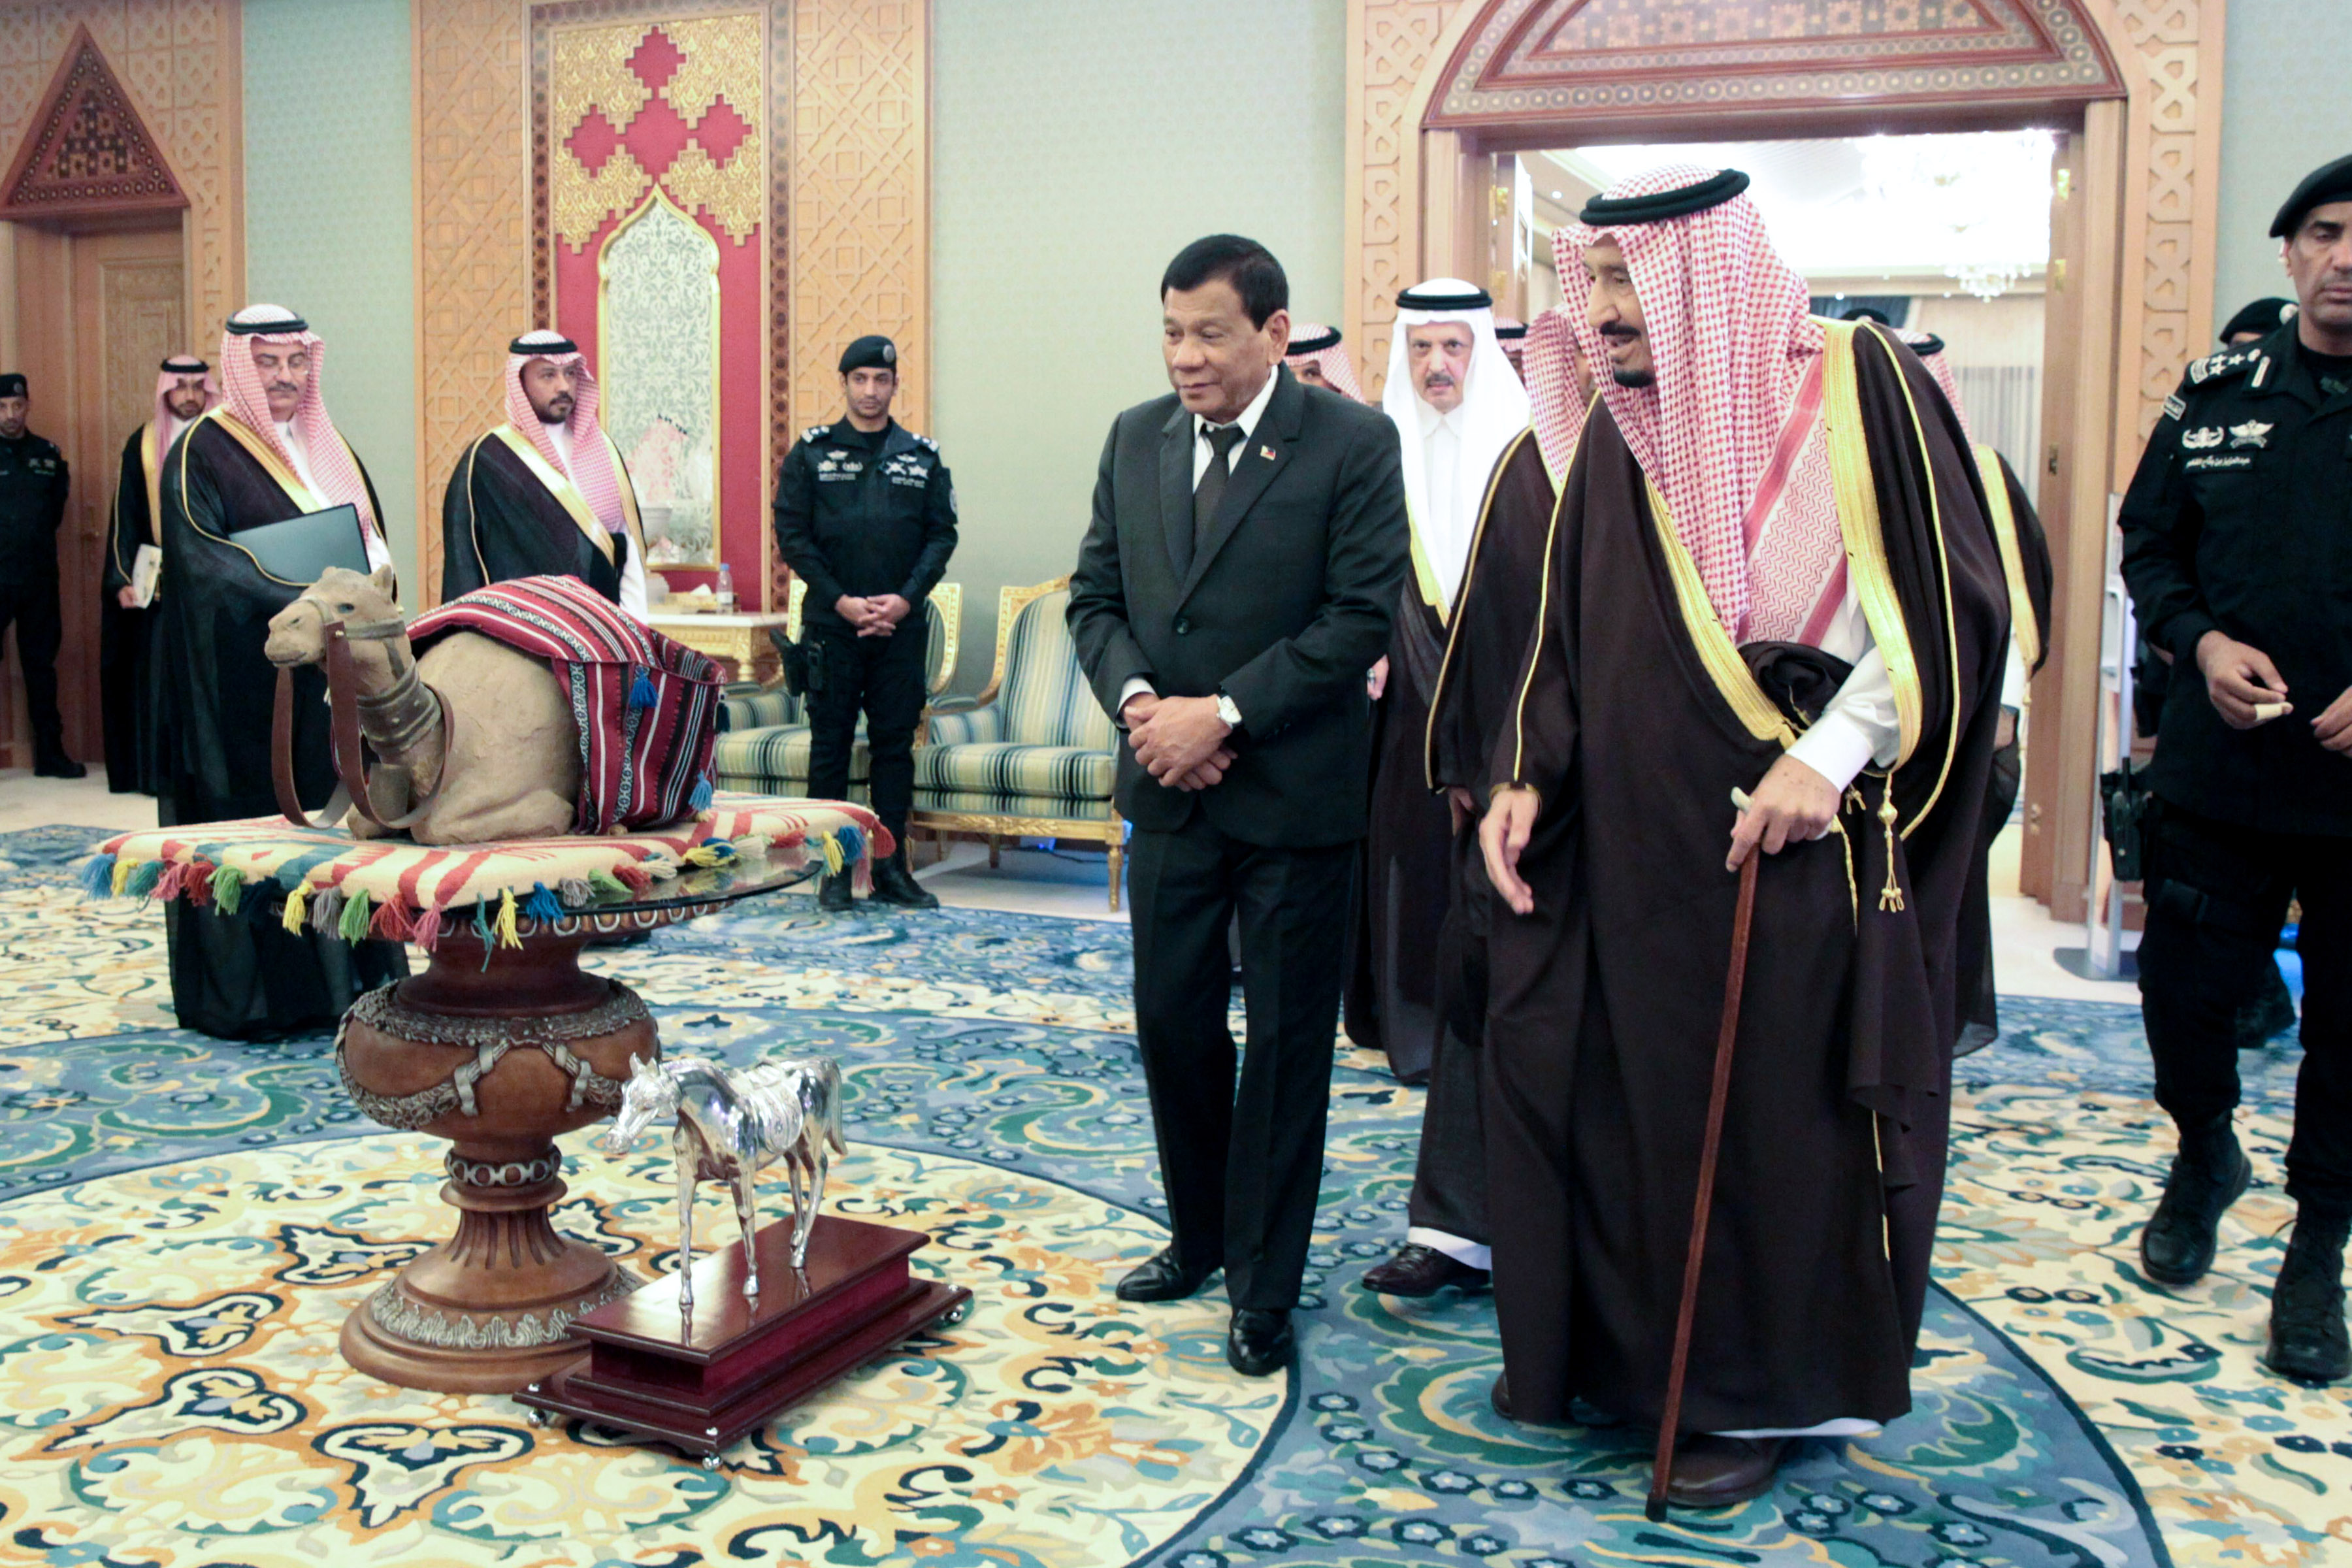 Duterte to bring home 16,000 jobs for Filipinos from Saudi deals